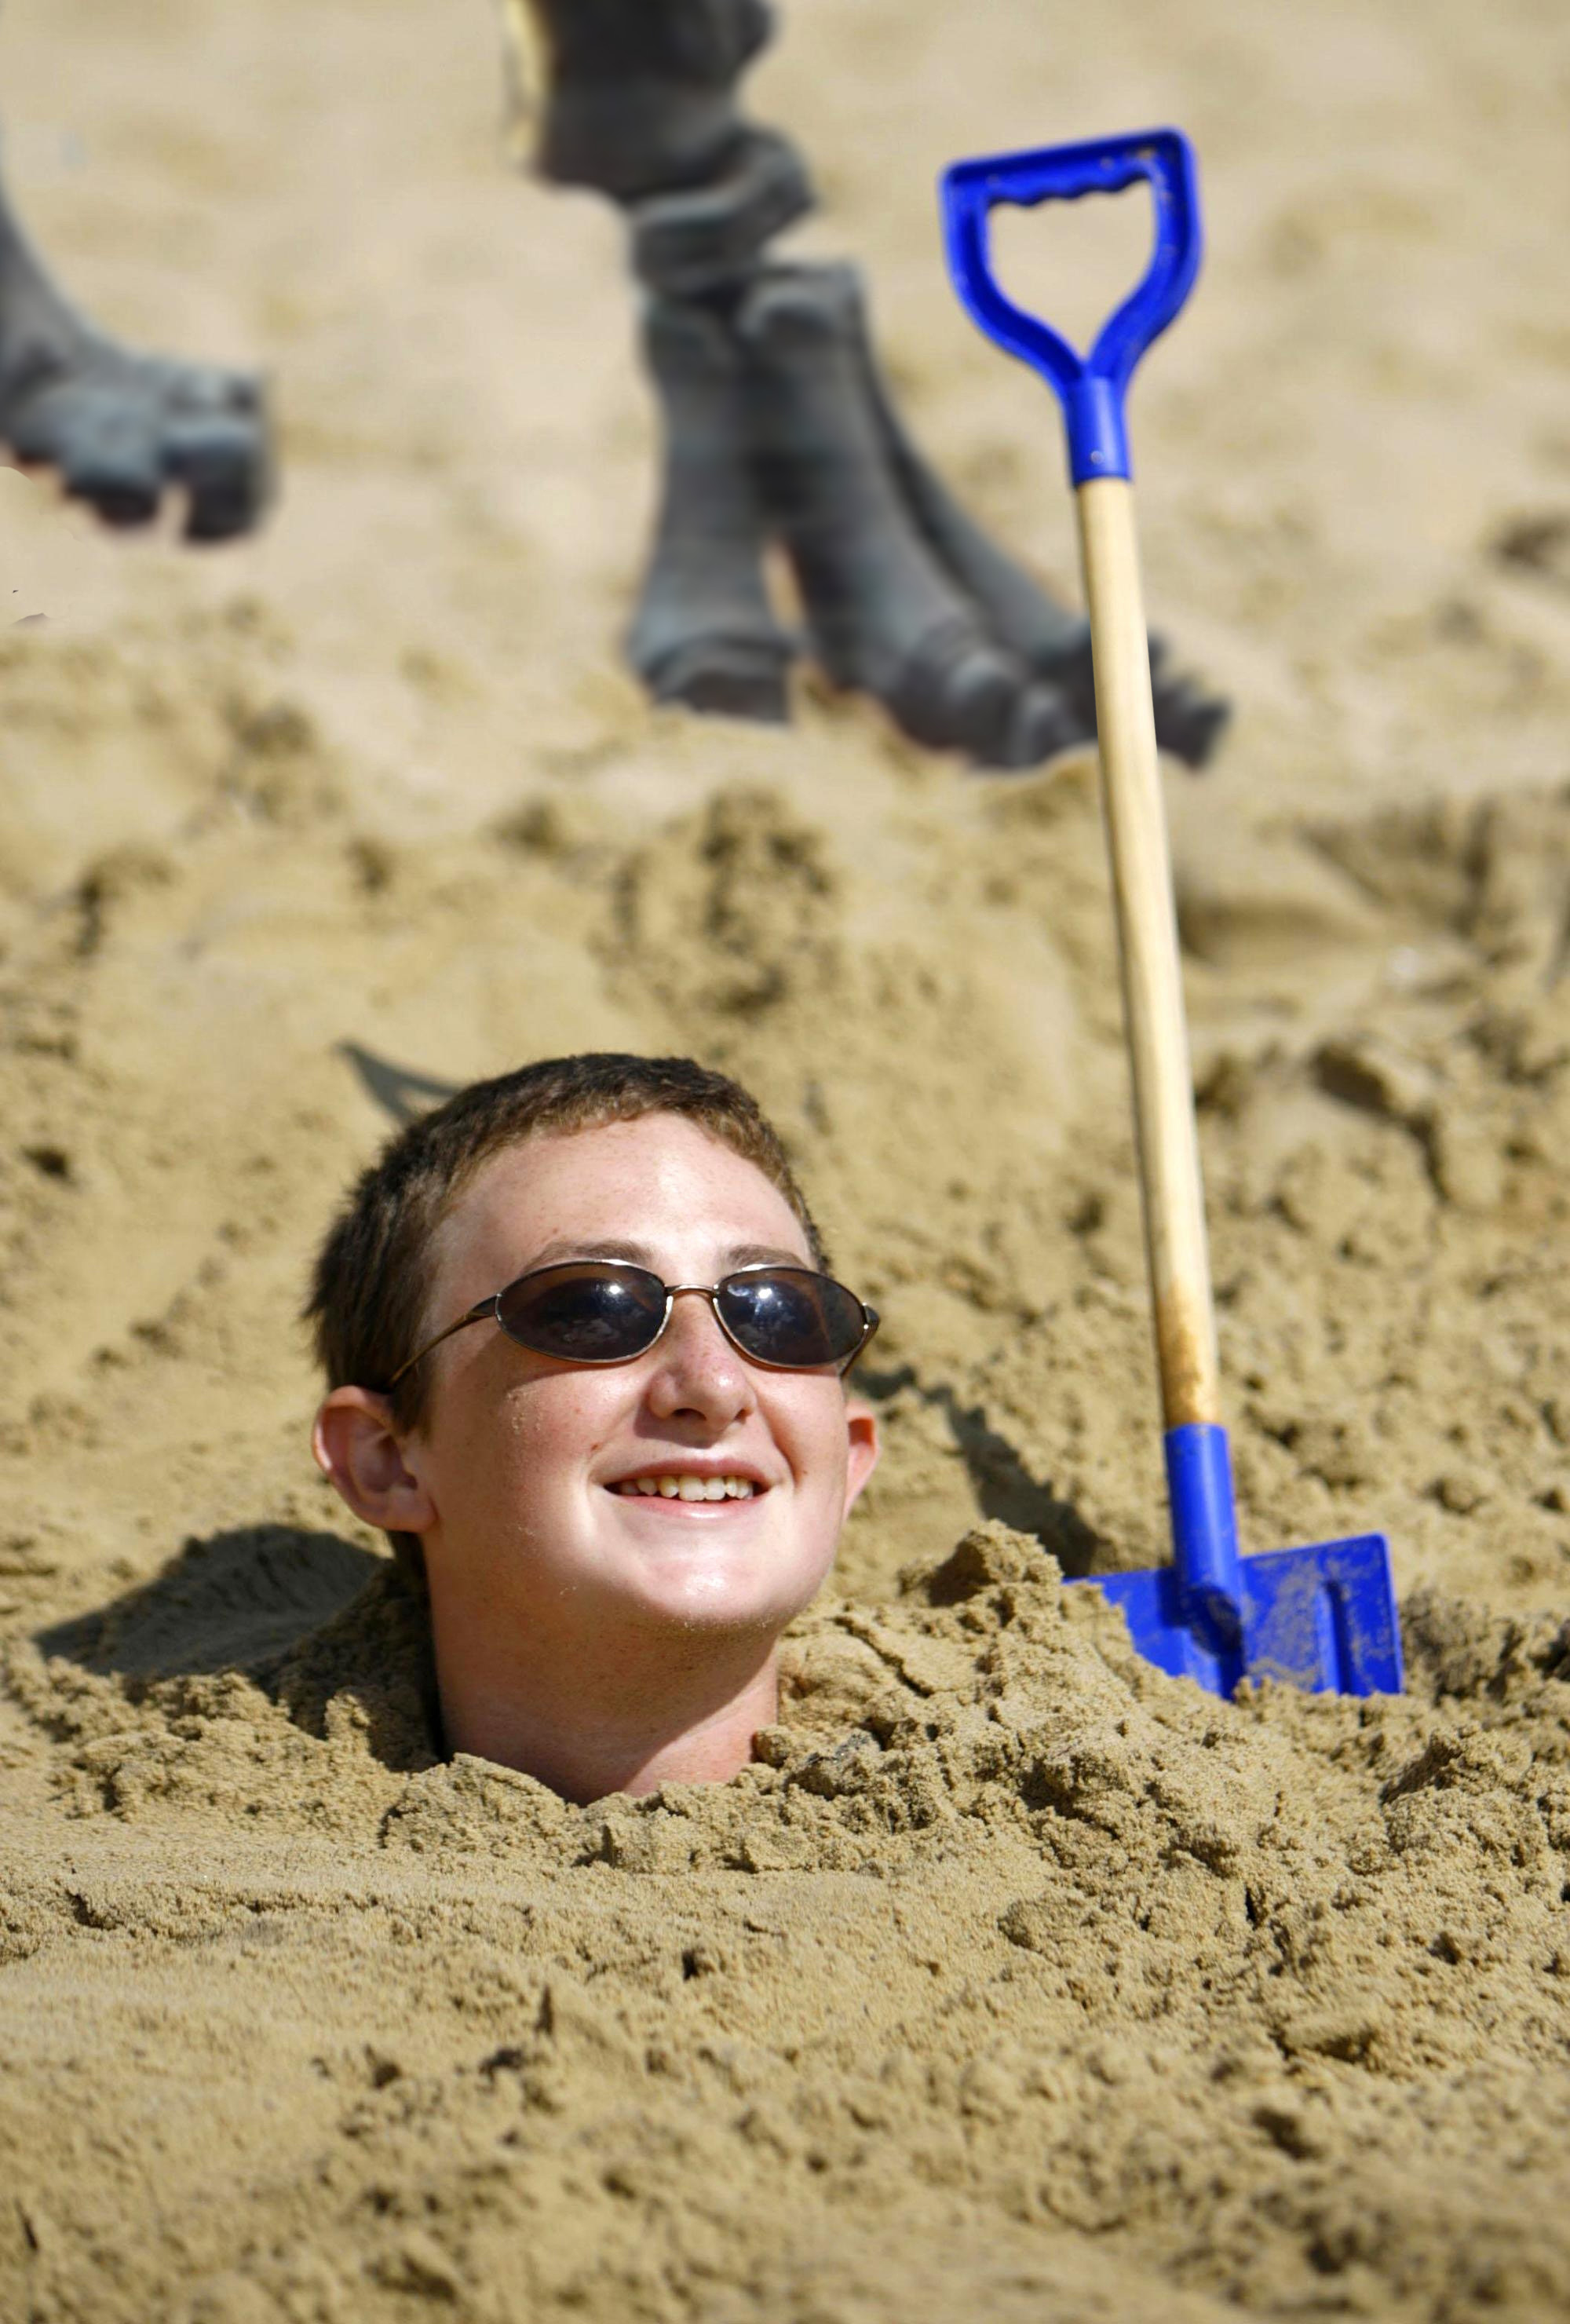 A boy from Southampton enjoys a moment of sunshine on Bournemouth beach in Dorset.